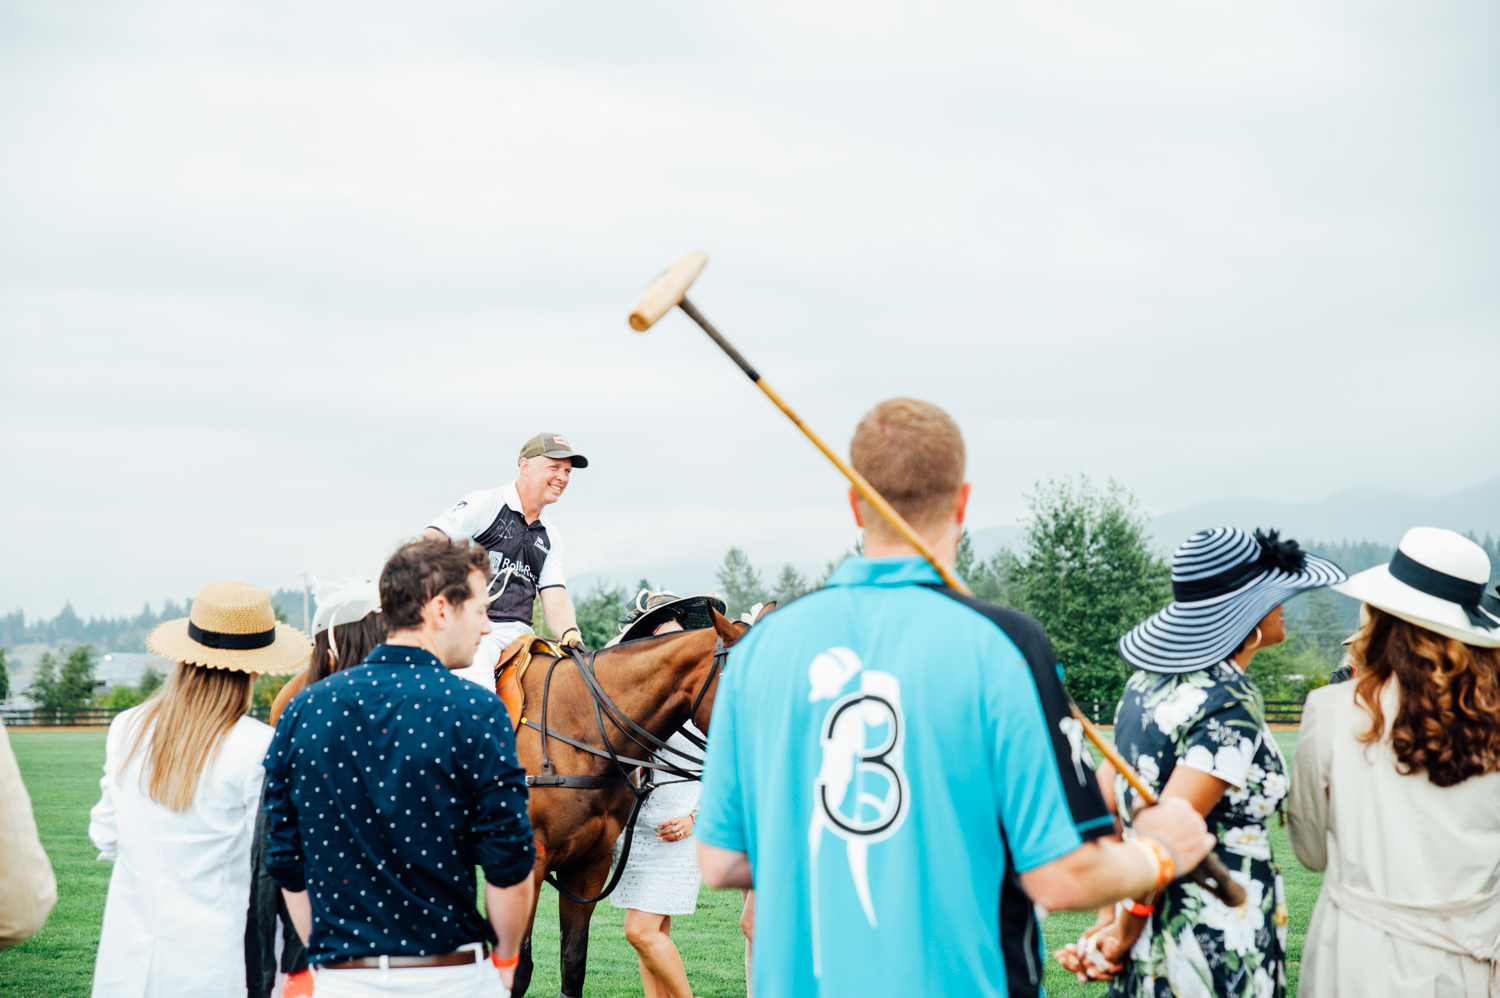 Yes, such a thing exists! Every year the Seattle Polo & Equestrian Club puts on quit a show inn Enumclaw, where attendees are dressed to impress in the Fashion Parade, watching multiple polo games, team processionals, woman's hat parade and of course - the divot stomp. (Image: Elizabeth Crook / Seattle Refined)